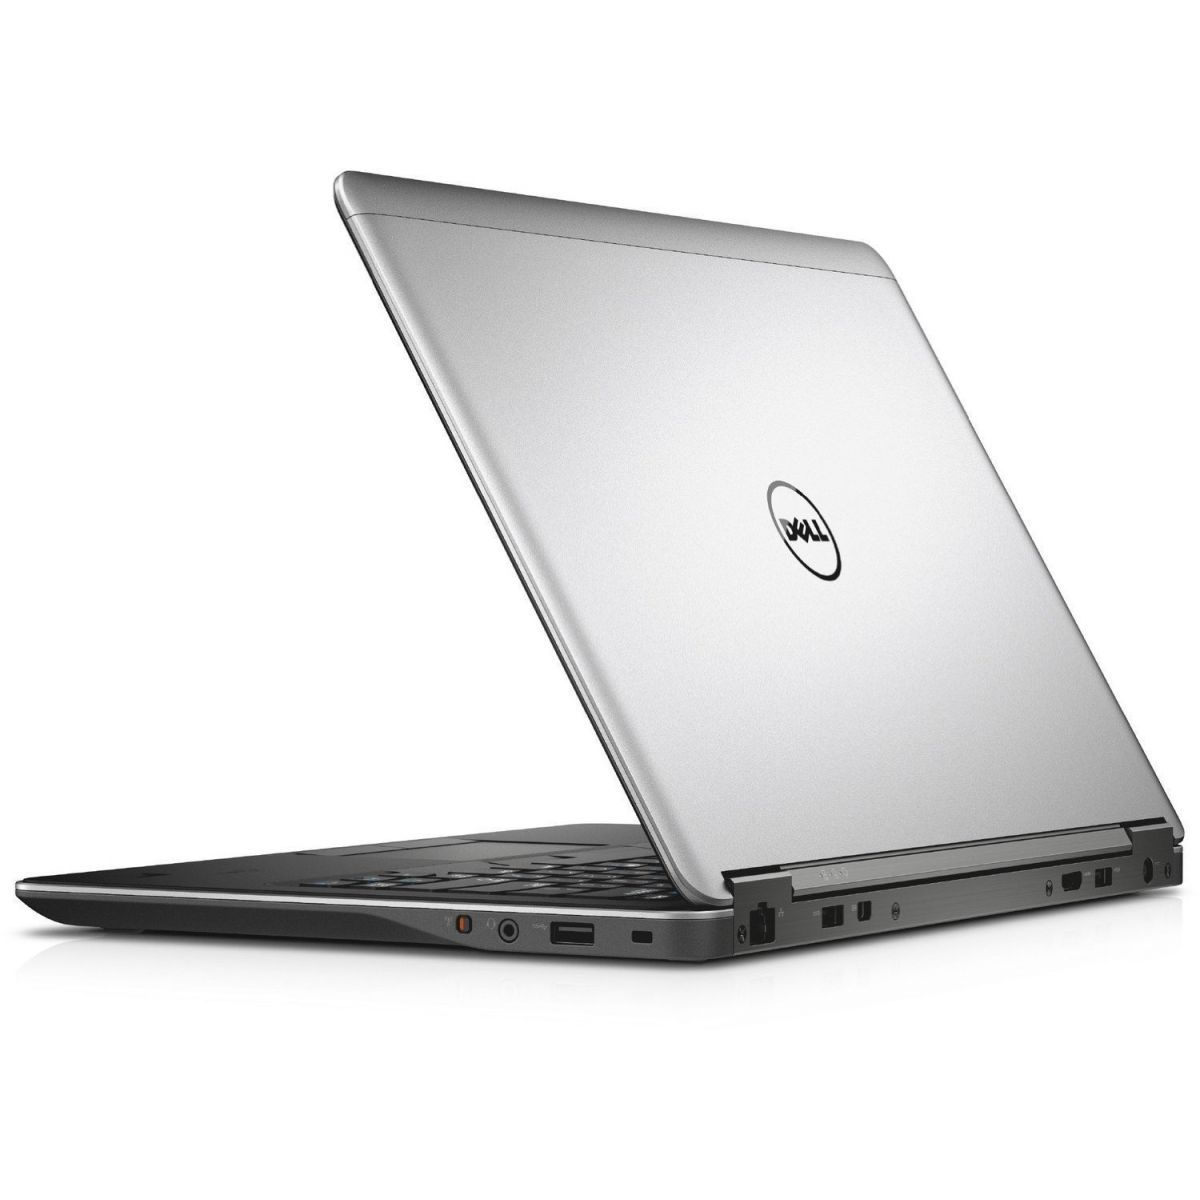 "Notebook Ultrabook Dell Latitude  VPro - Intel Core i5-4310U, 8GB de Memória, HD de 500GB, Tela HD de 14"", Windows 8.1 PRO - E7440 - Showroom"